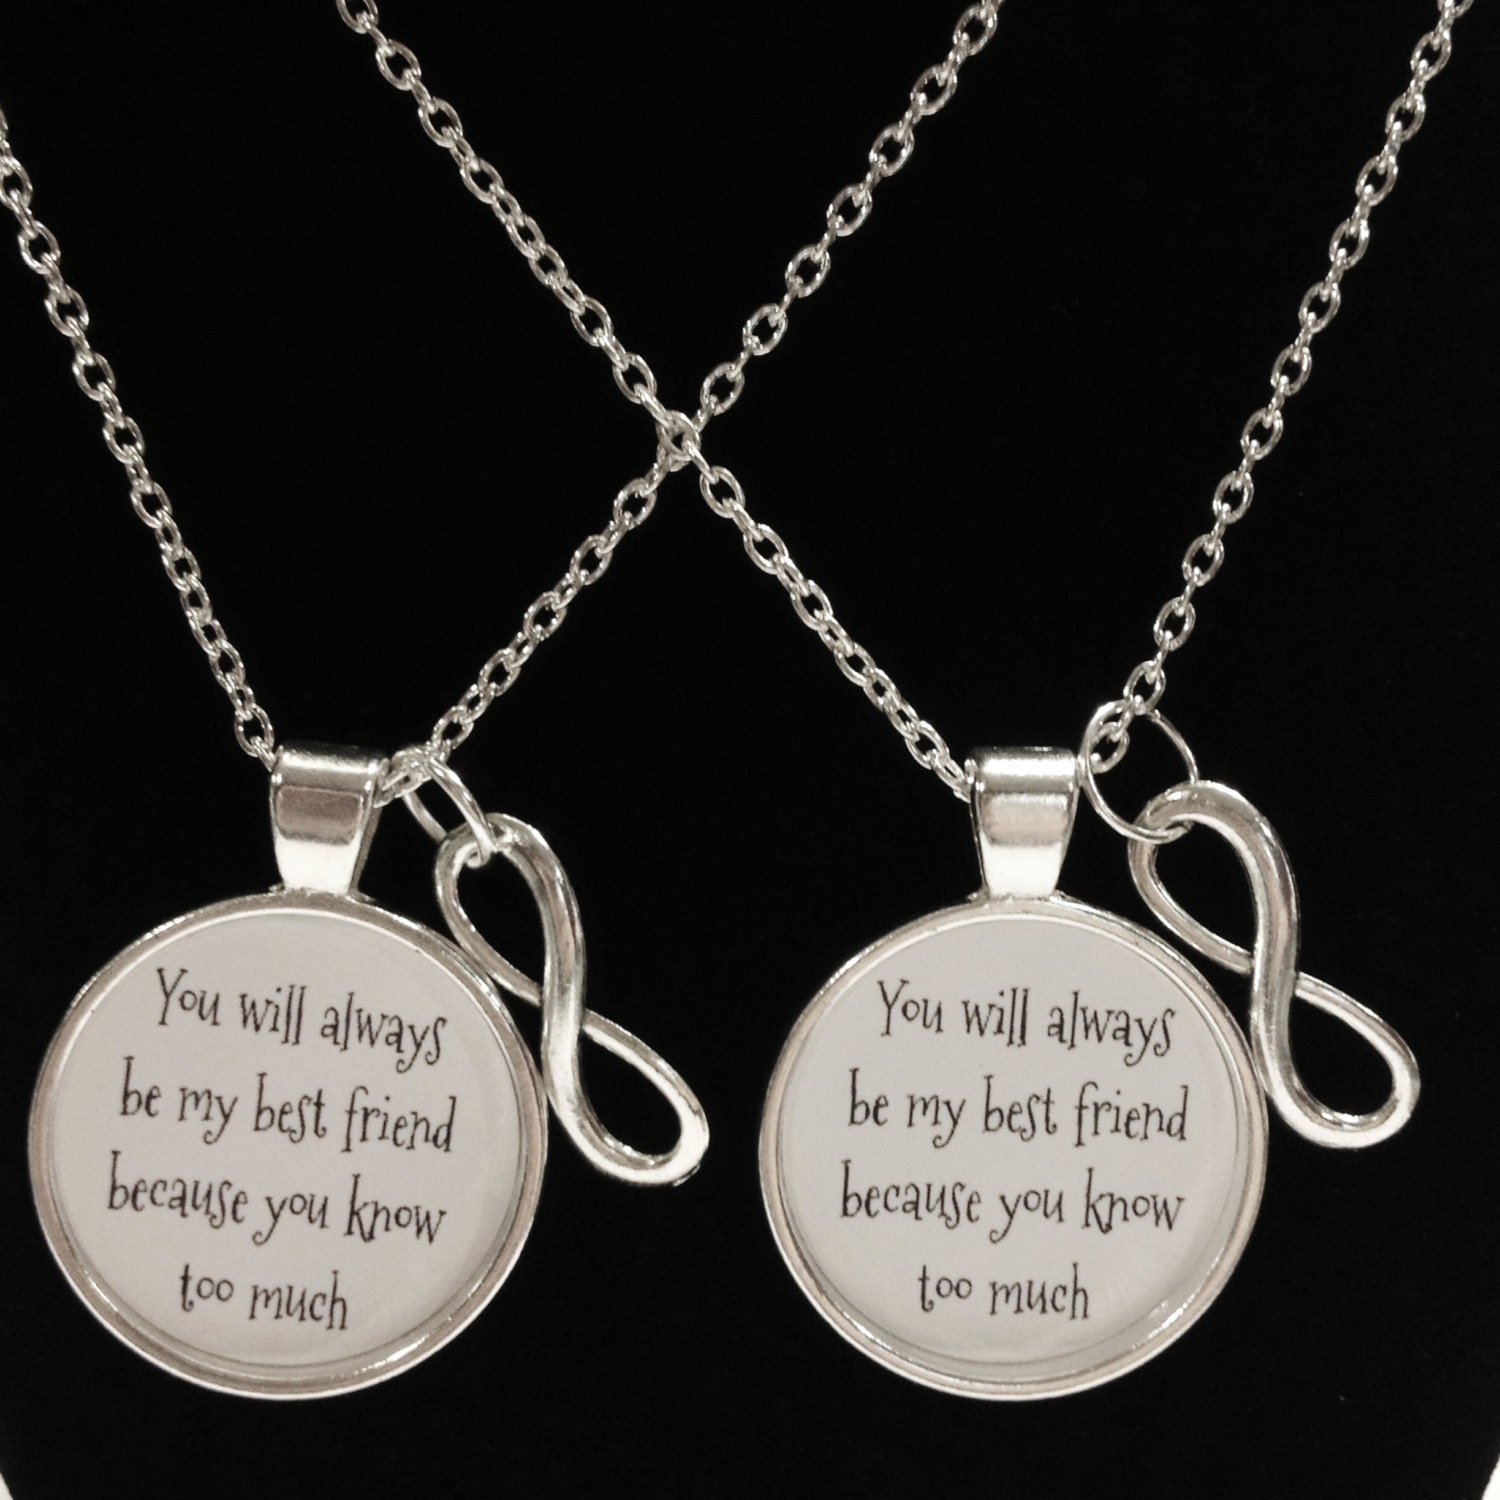 Friendship Quotes Jewelry: Best Friend Gift Best Friend Necklace Infinity You Will